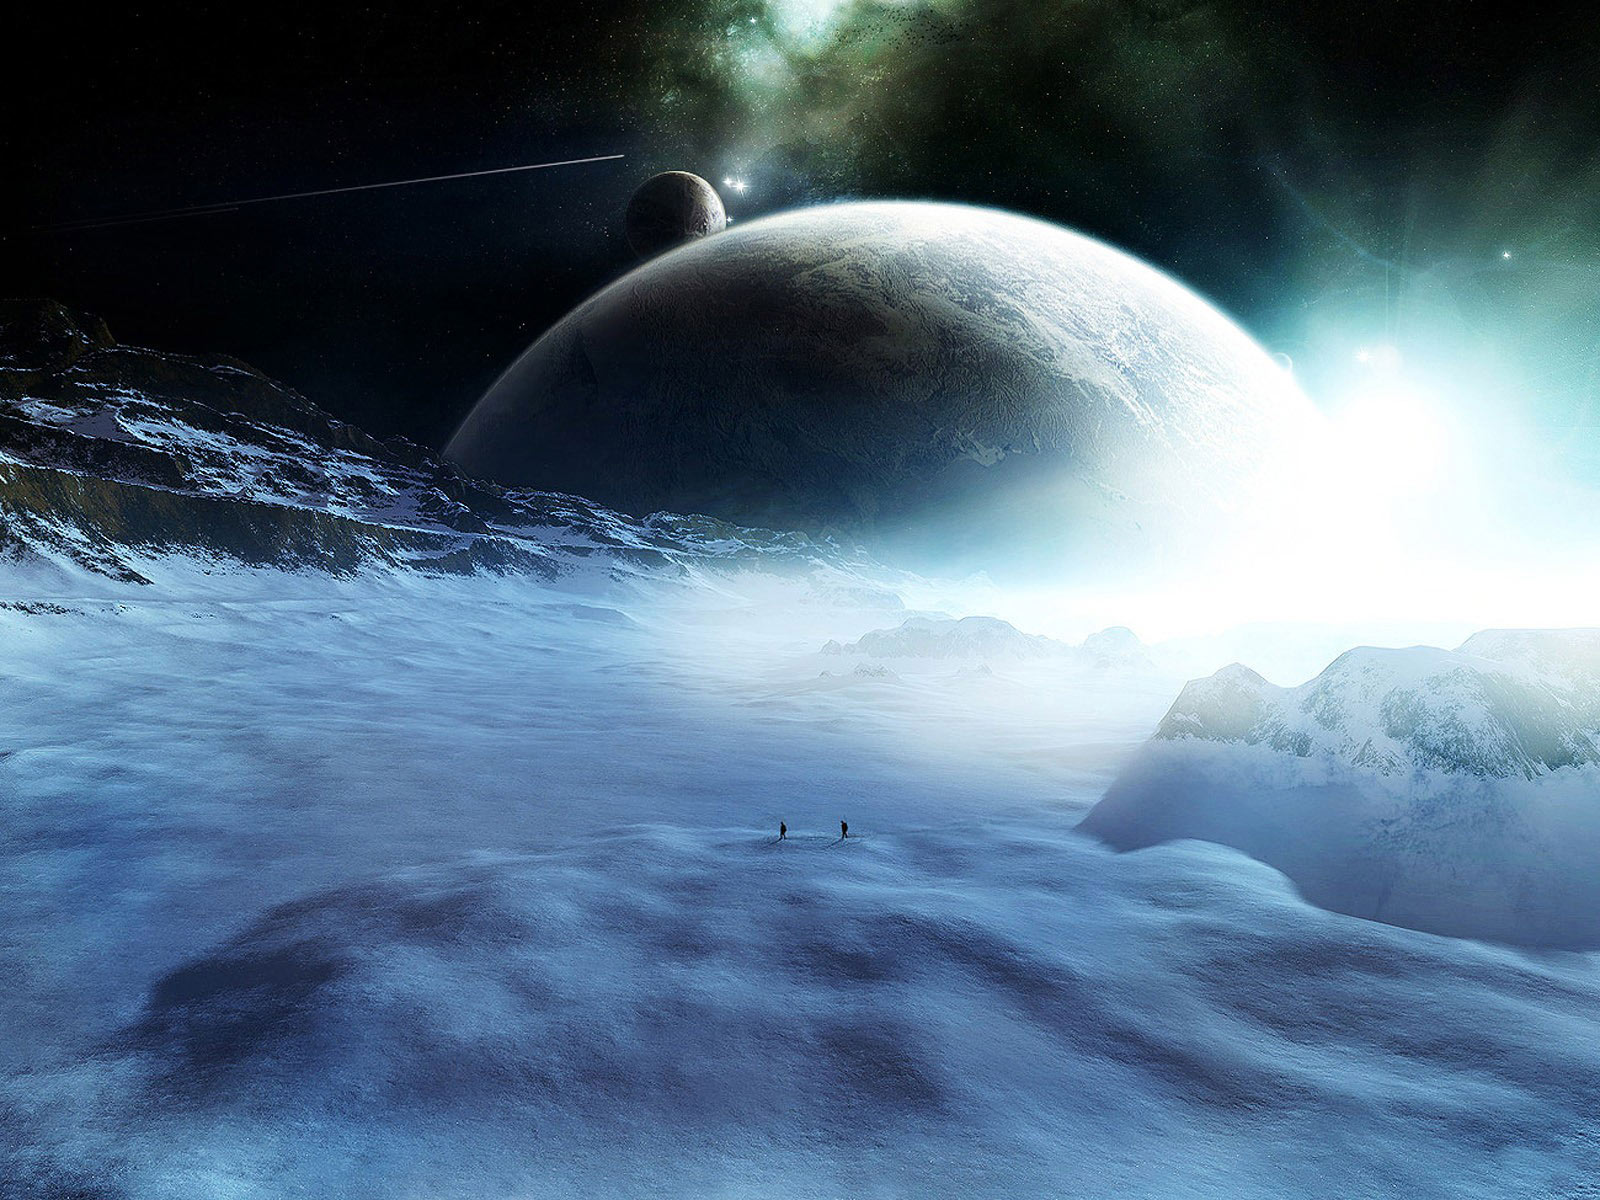 Space backgrounds Desktop hd Wallpaper | High Quality Wallpapers ...